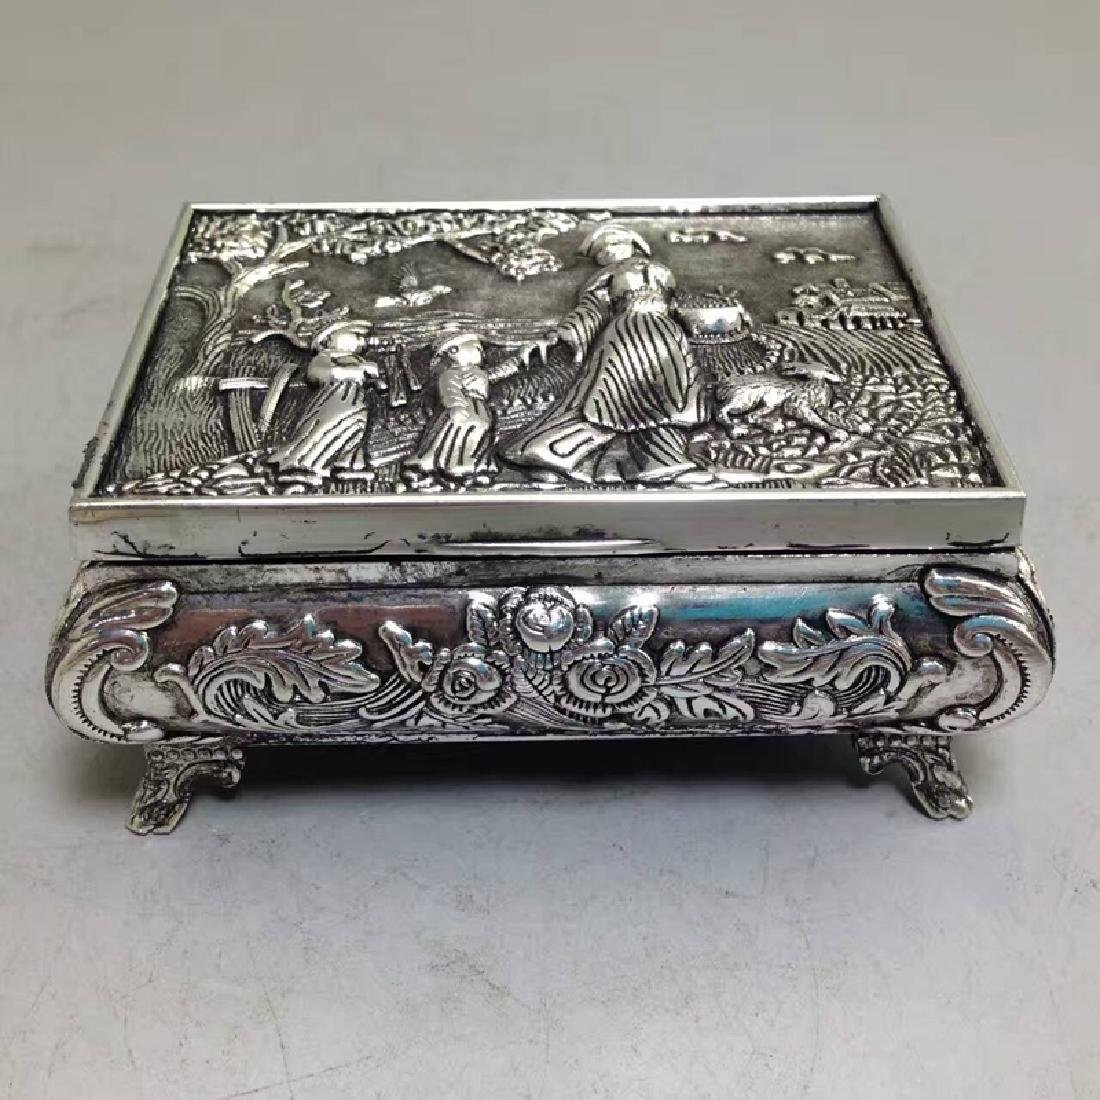 Chinese Antique Copper-Nickel Jewelry Box